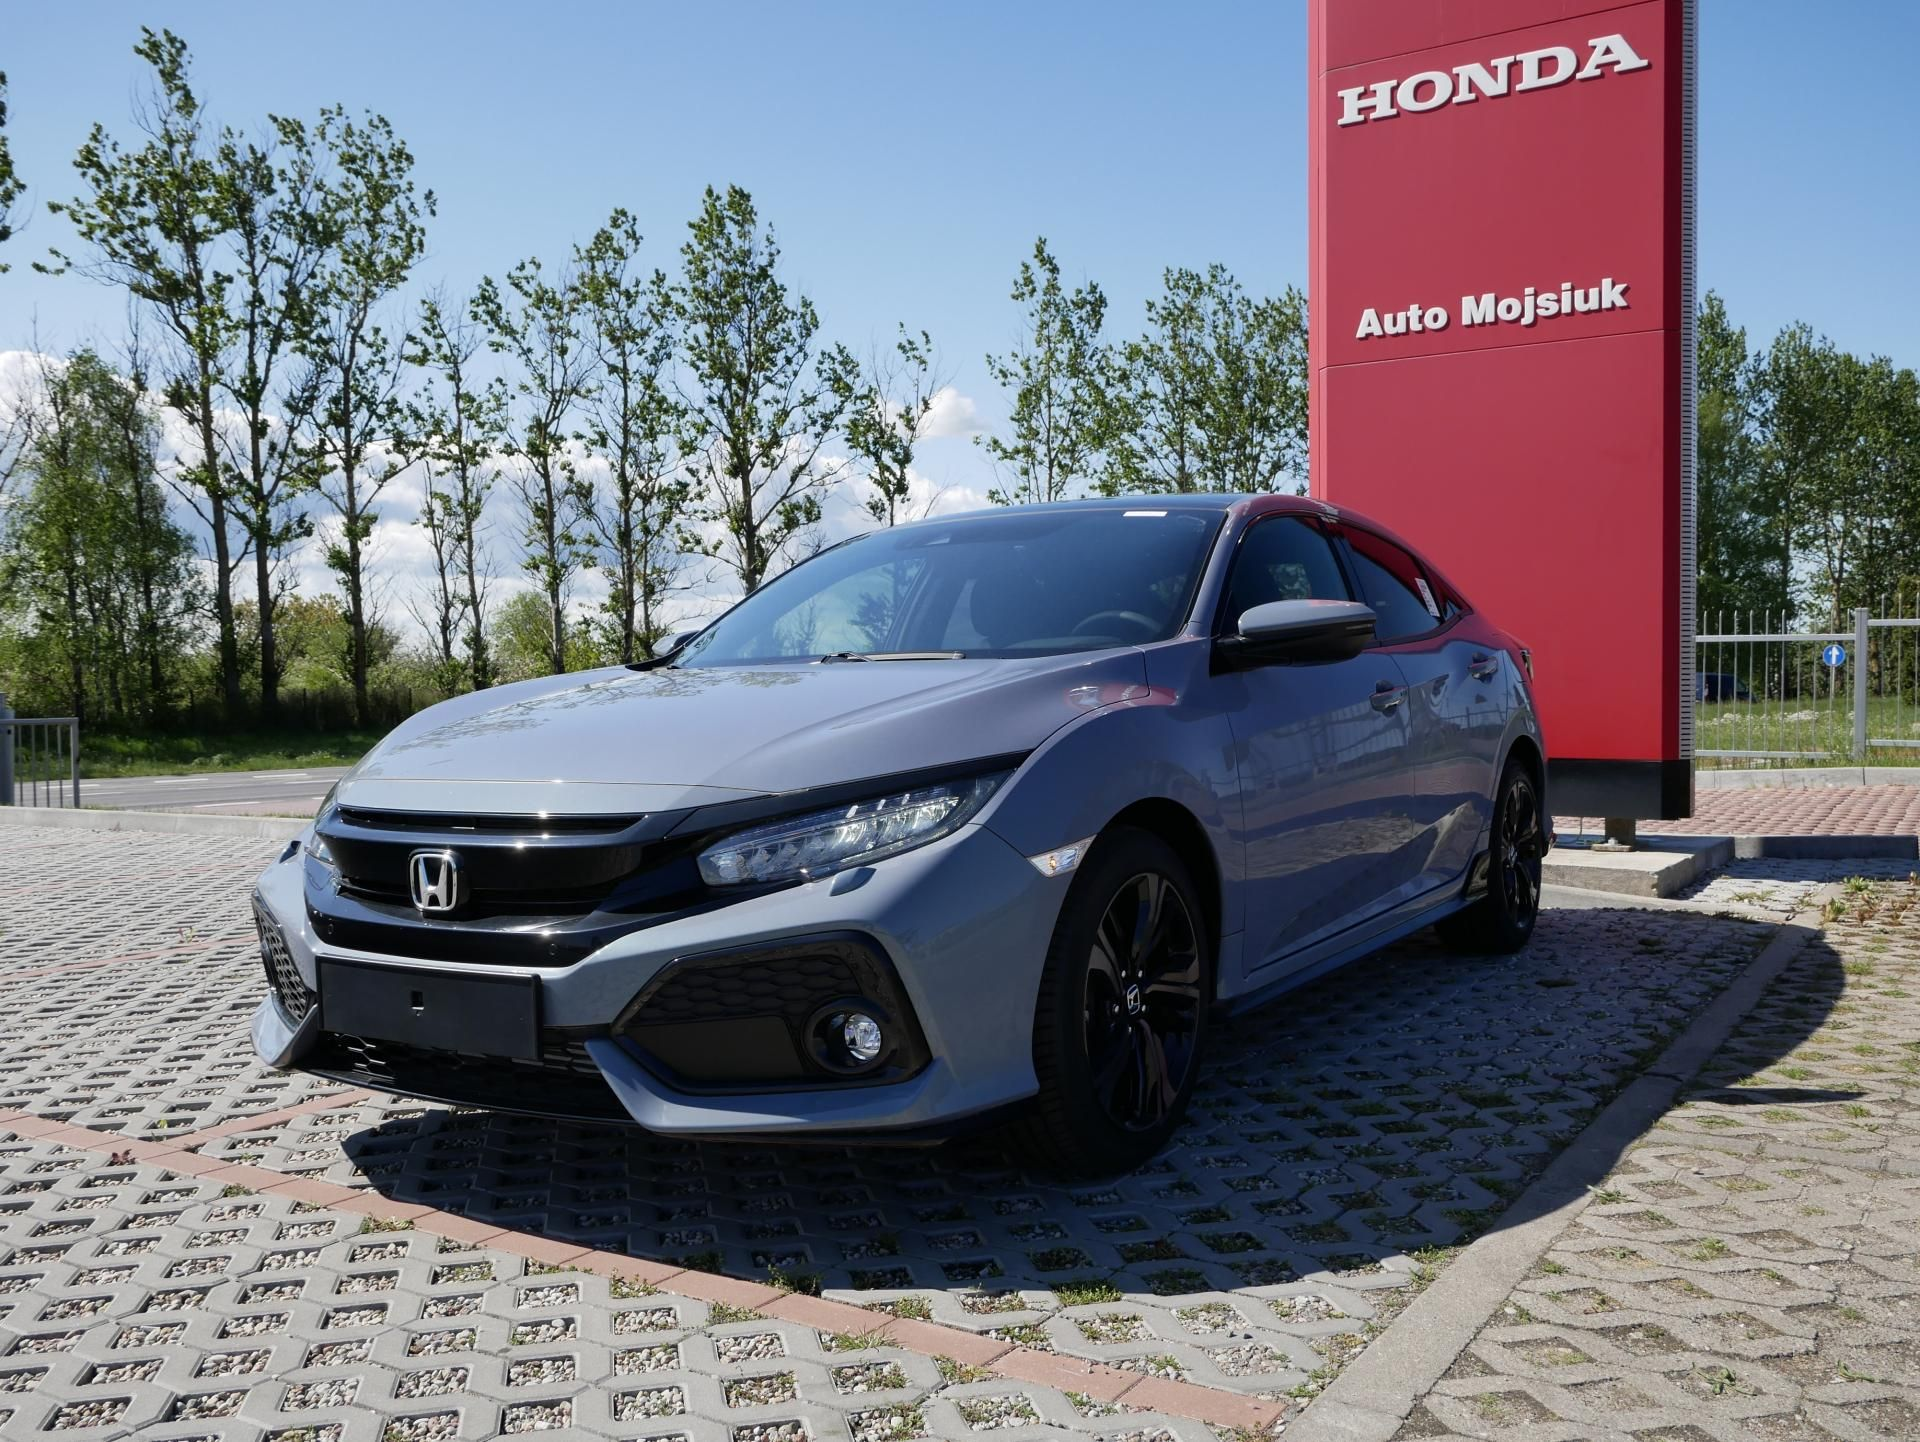 Honda Civic 1.5 VTEC TURBO Sport Plus MT 2019 RABAT